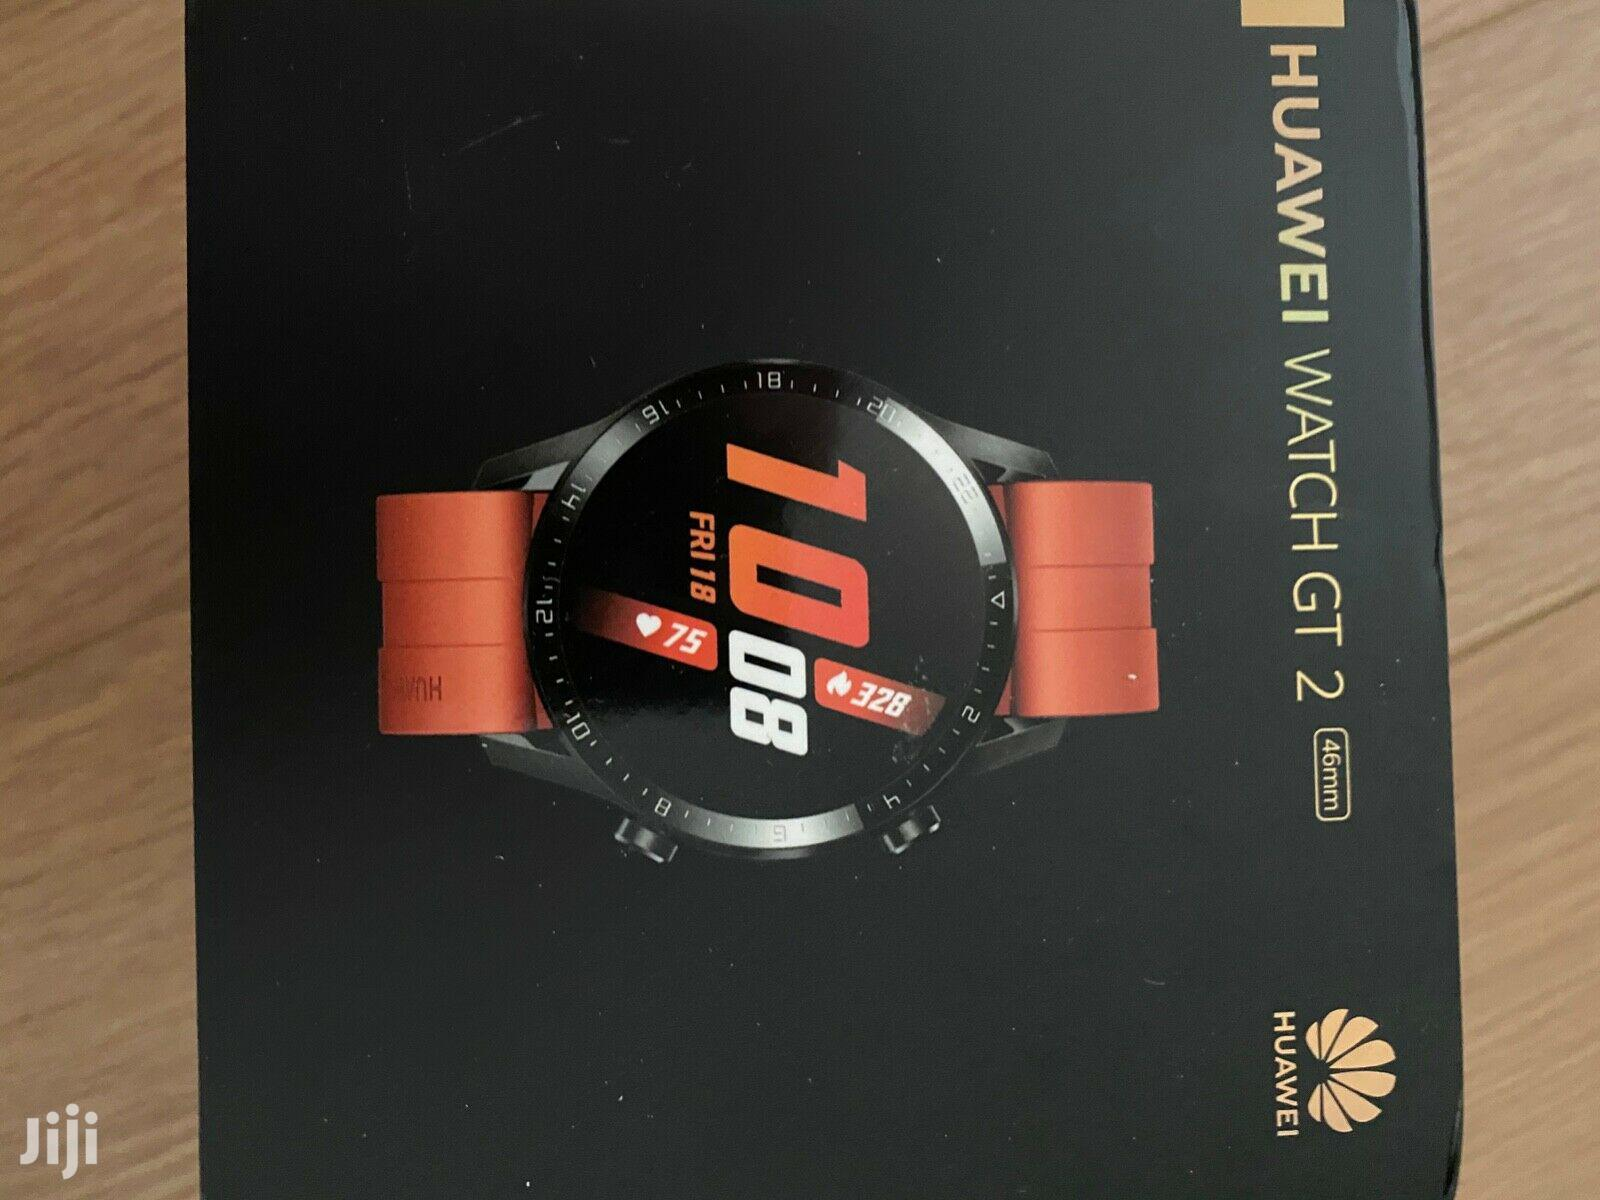 Huawei Watch Gt 2 46mm | Smart Watches & Trackers for sale in Accra Metropolitan, Greater Accra, Ghana